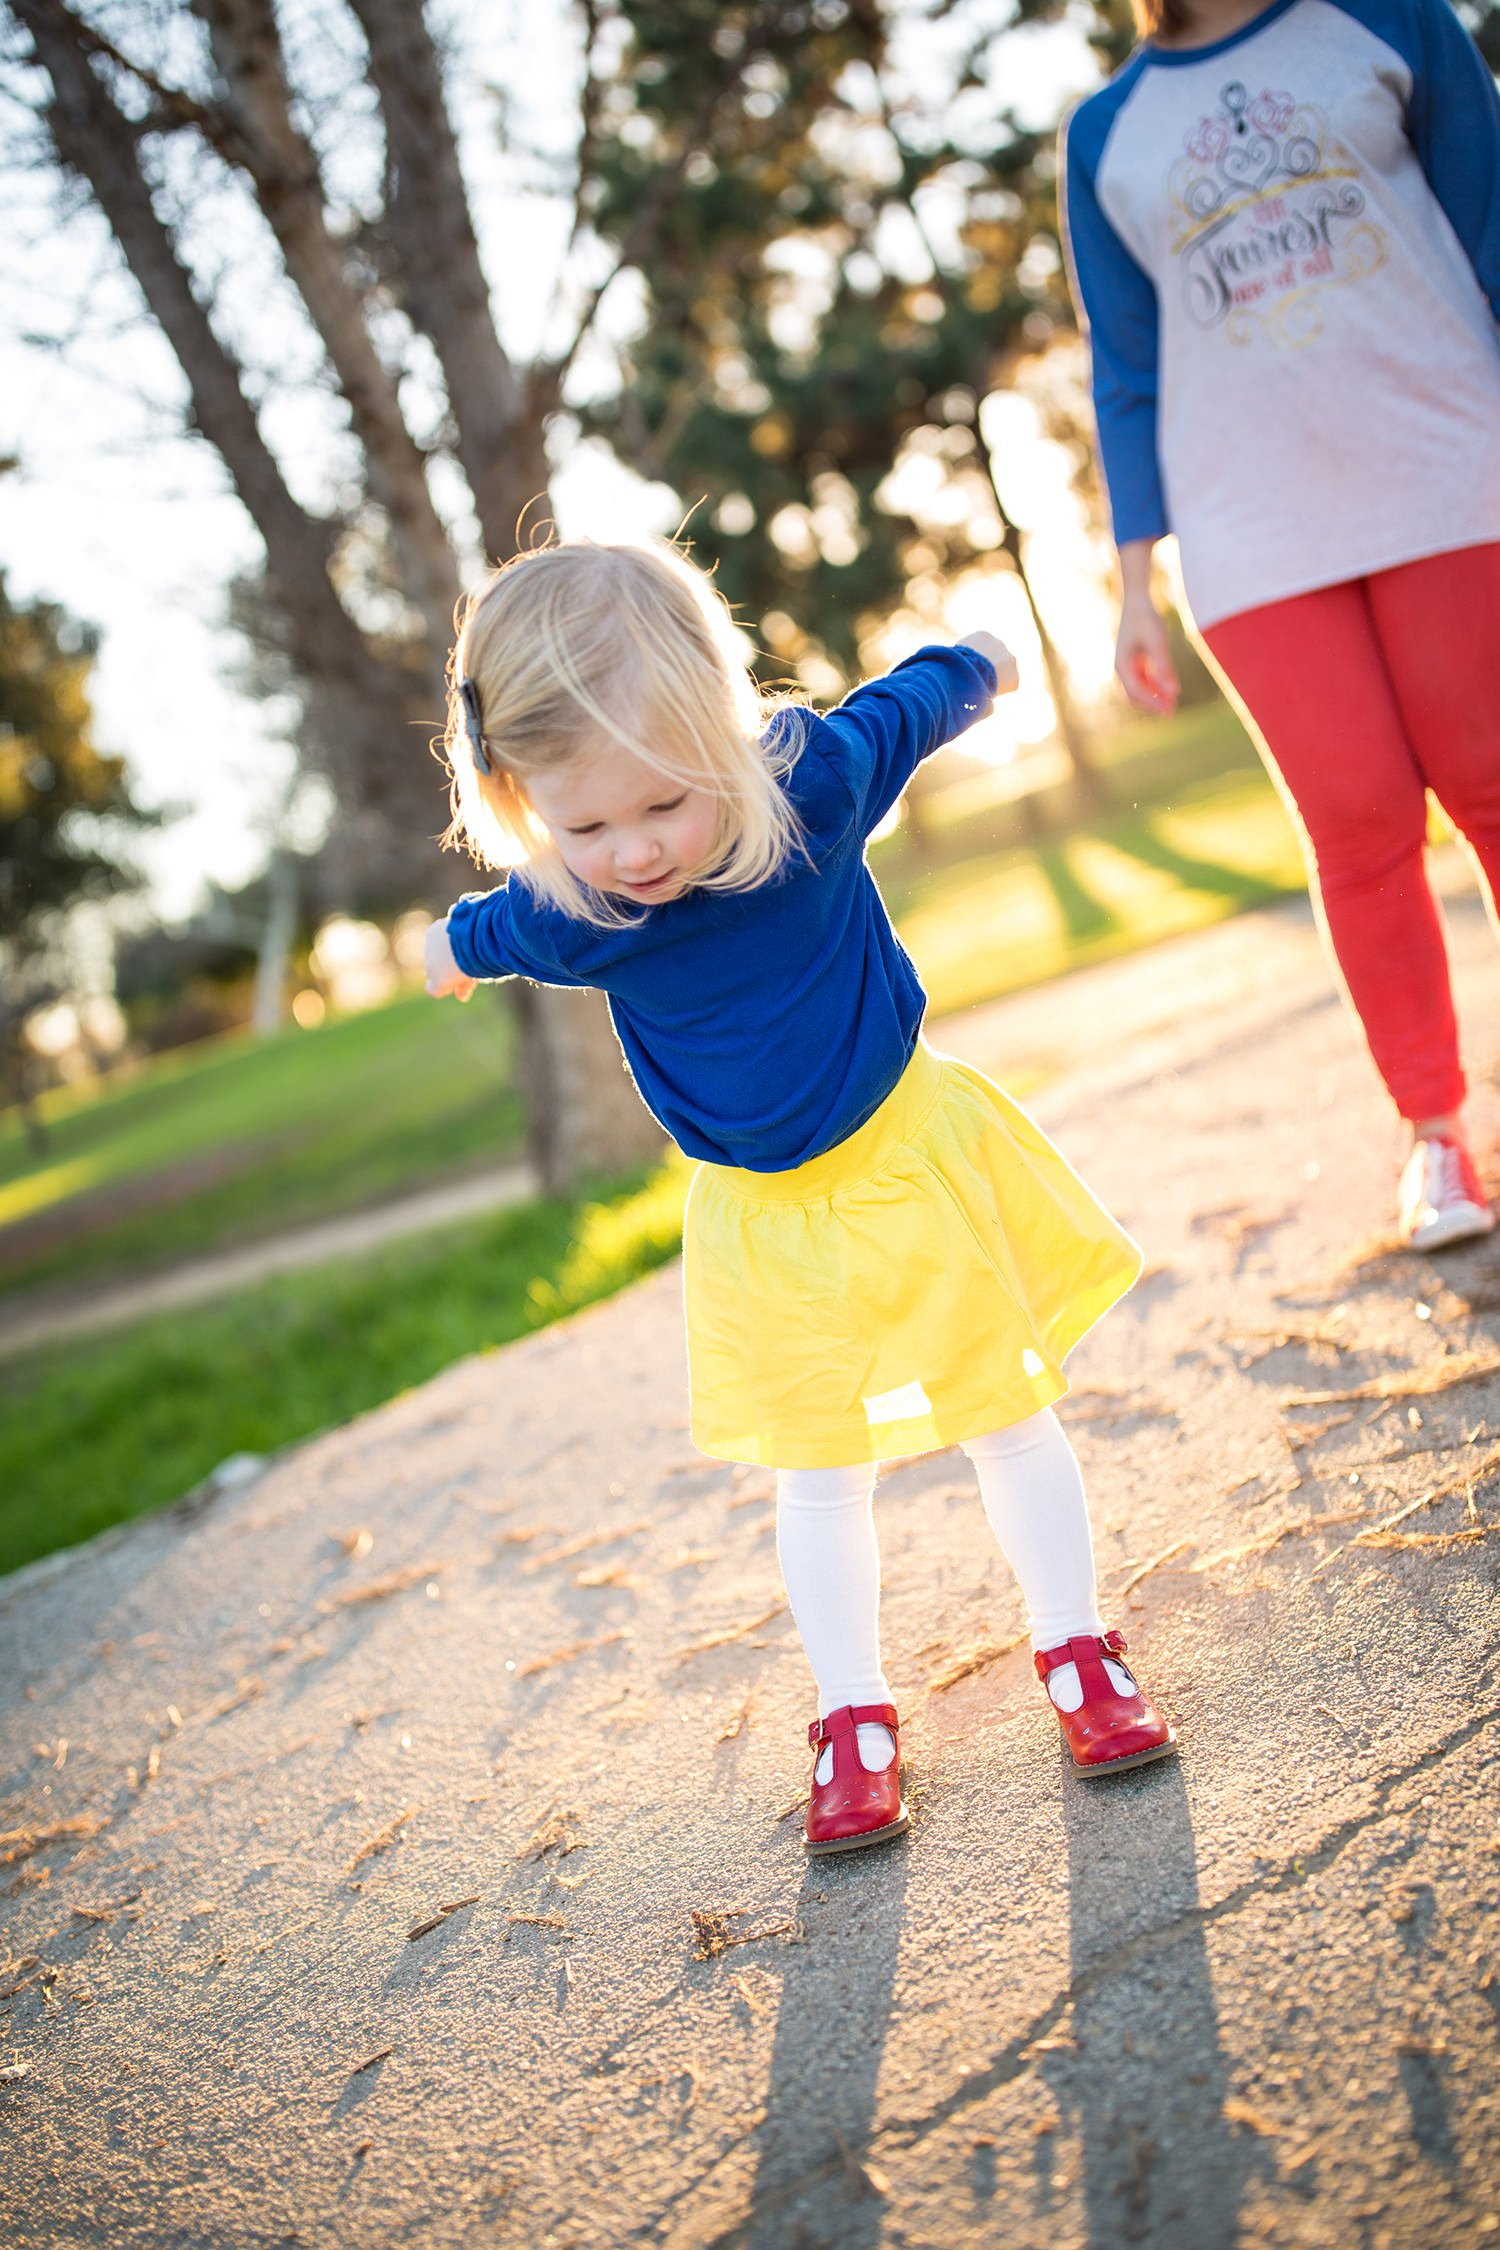 This Snow White DisneyBound outfit is perfect for trips to Disneyland